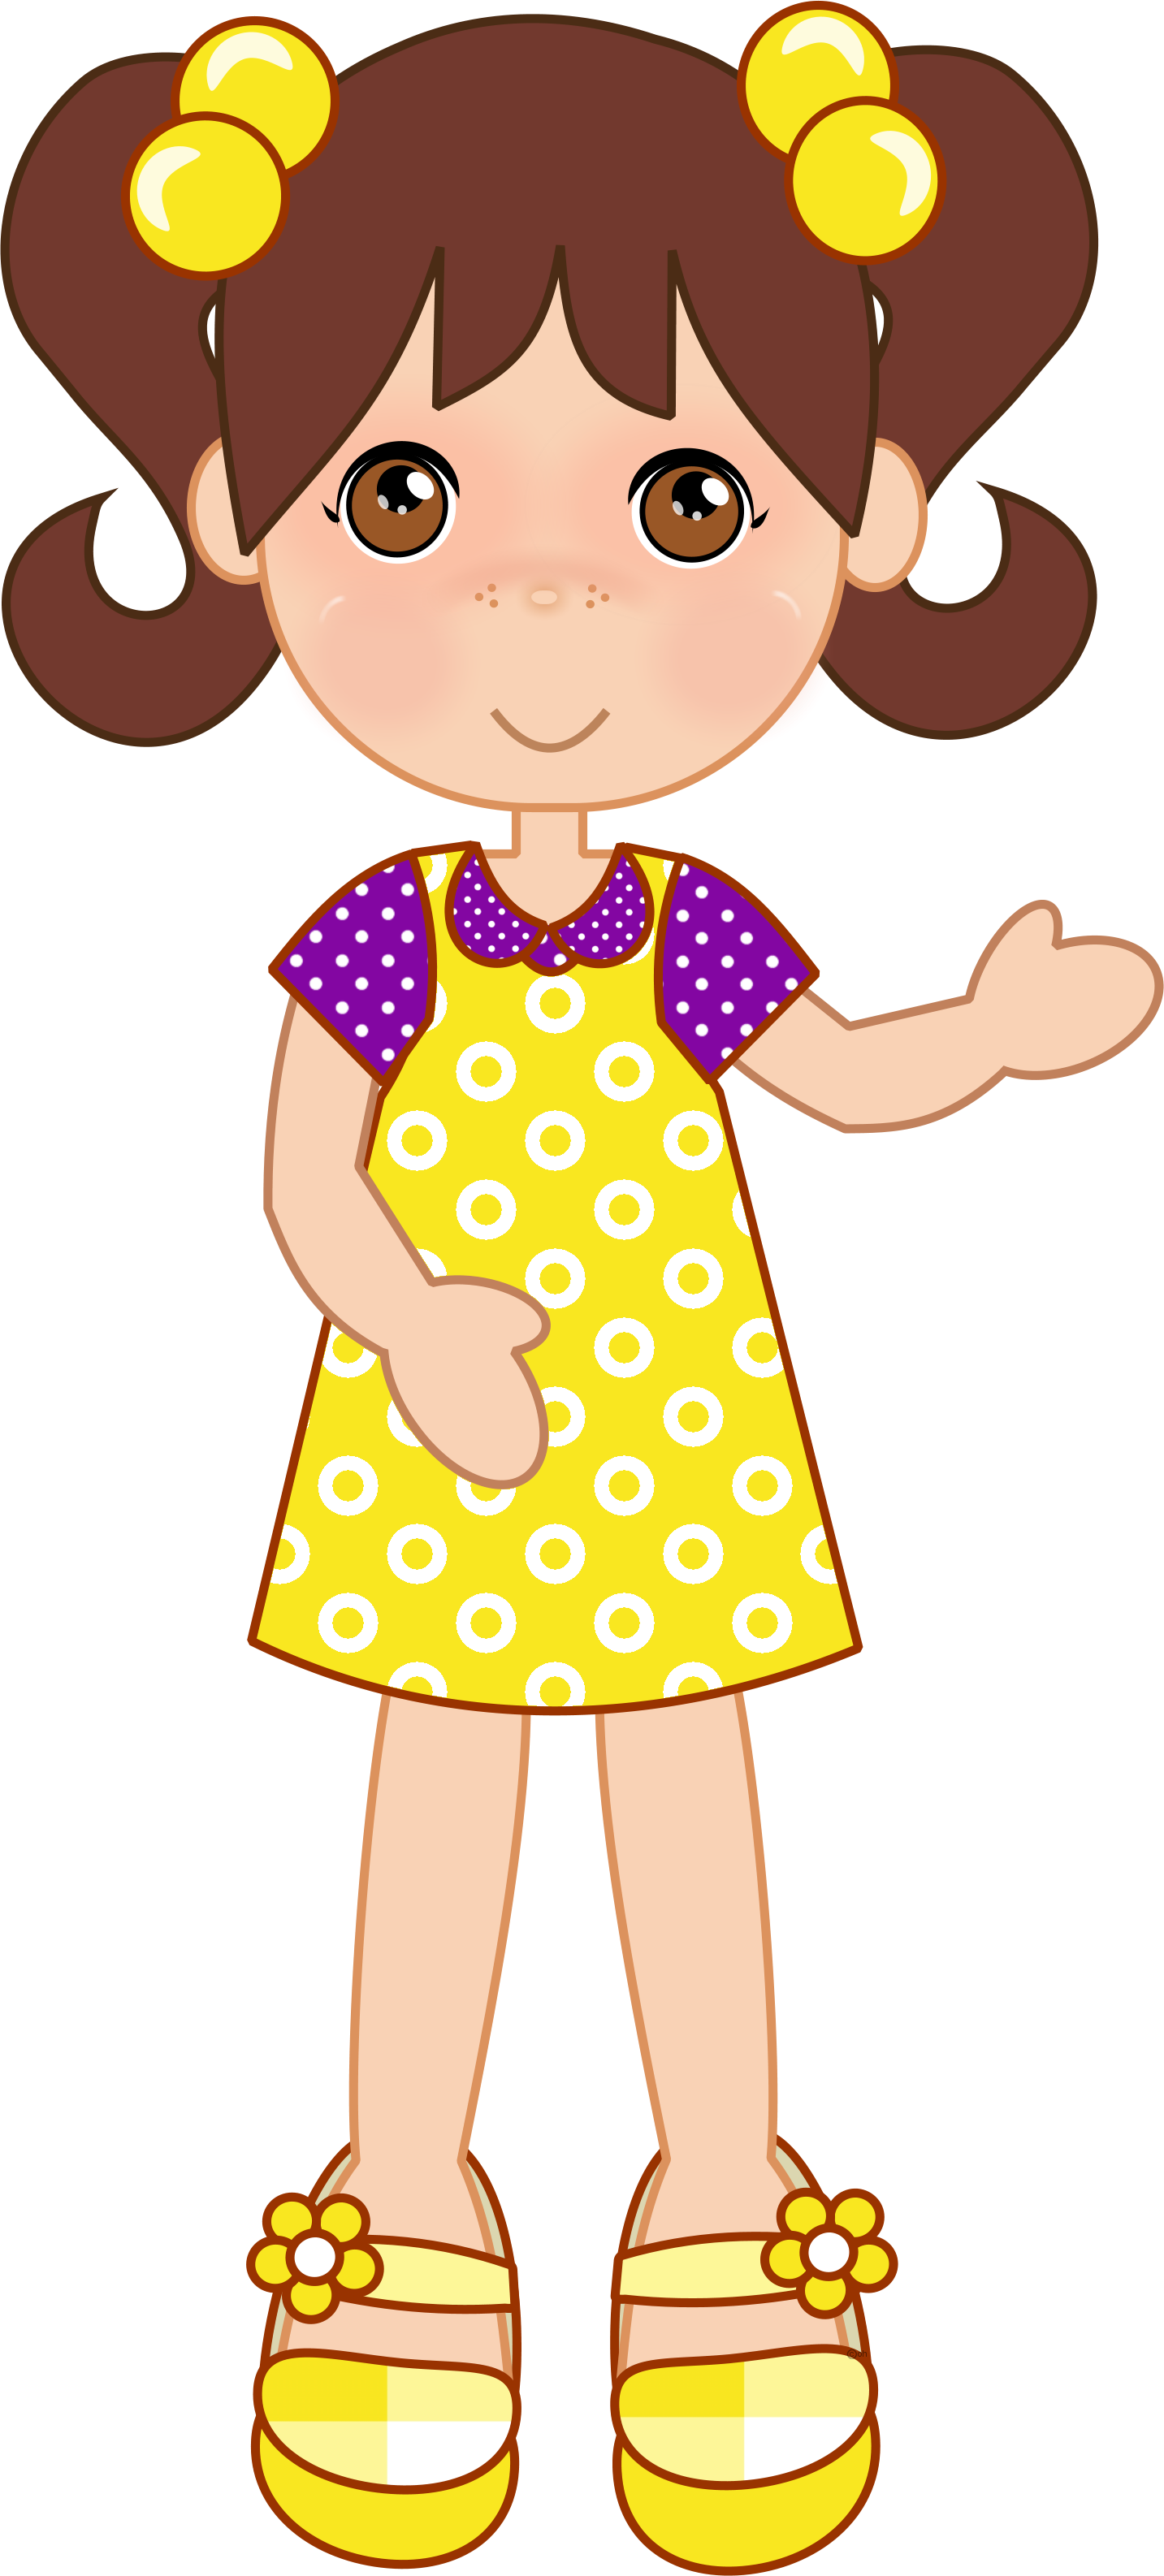 Ch b clip children. Activities clipart art project